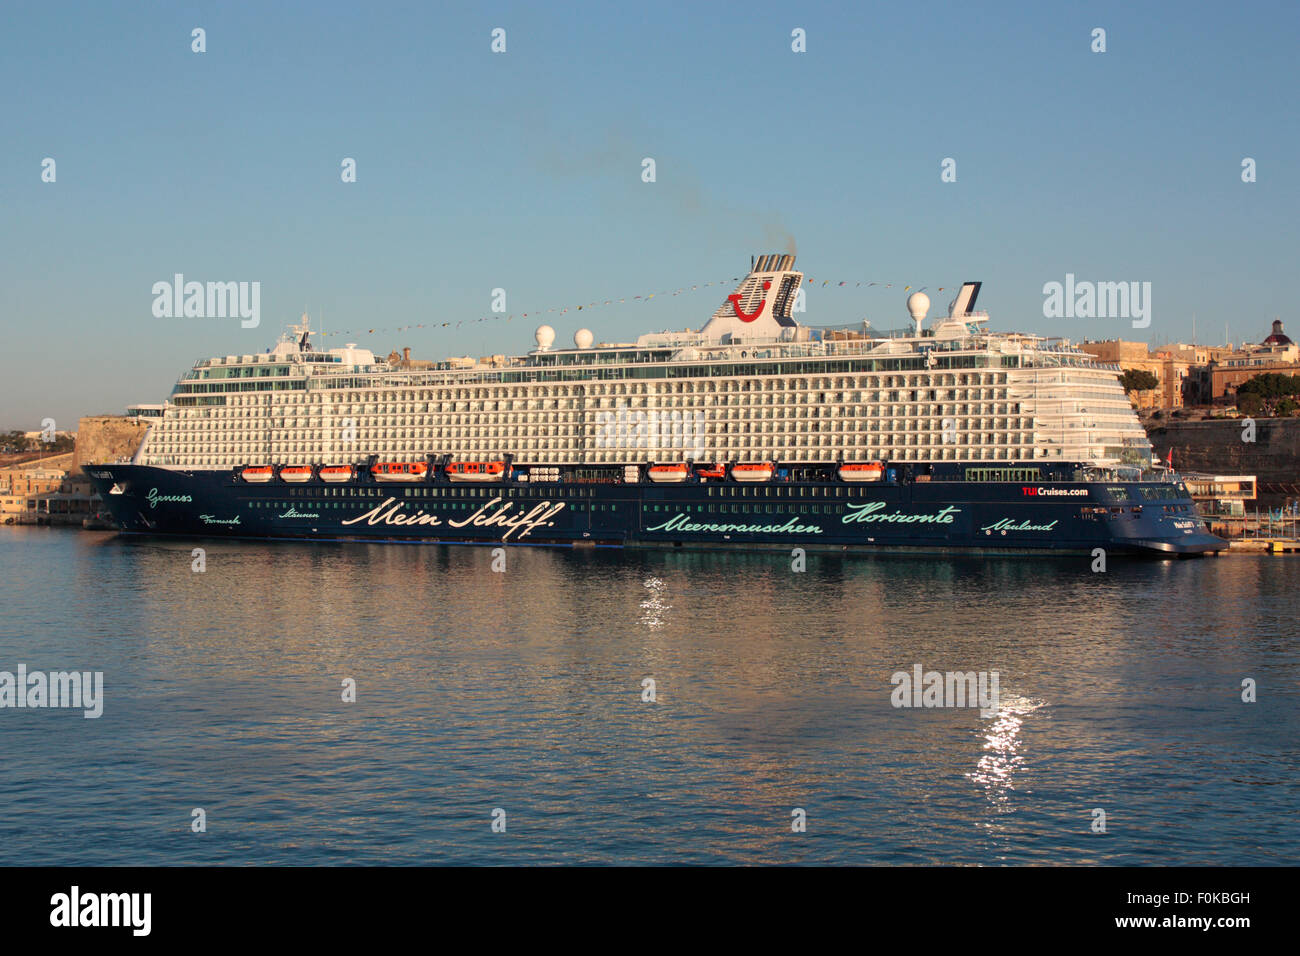 The TUI cruise ship or liner Mein Schiff 3 in Malta shortly after dawn - Stock Image